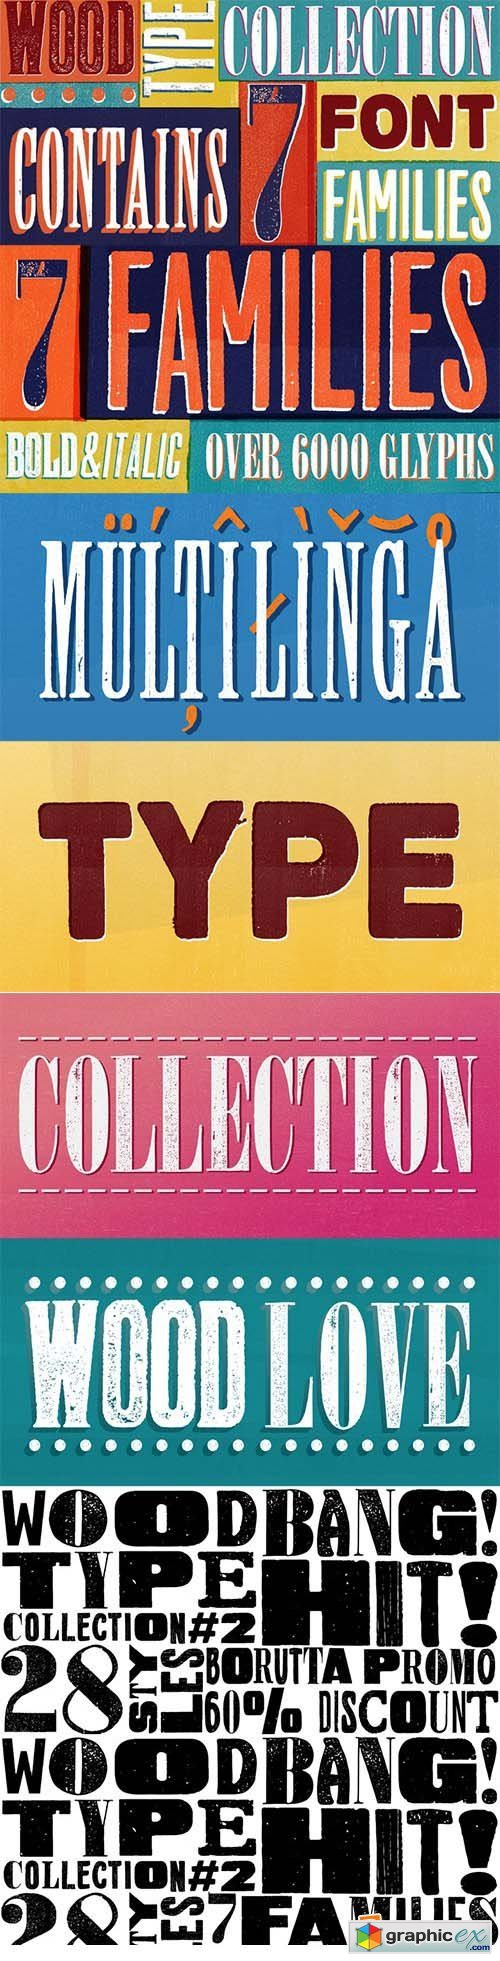 Wood Type Collection Font Family - 39 Font $390